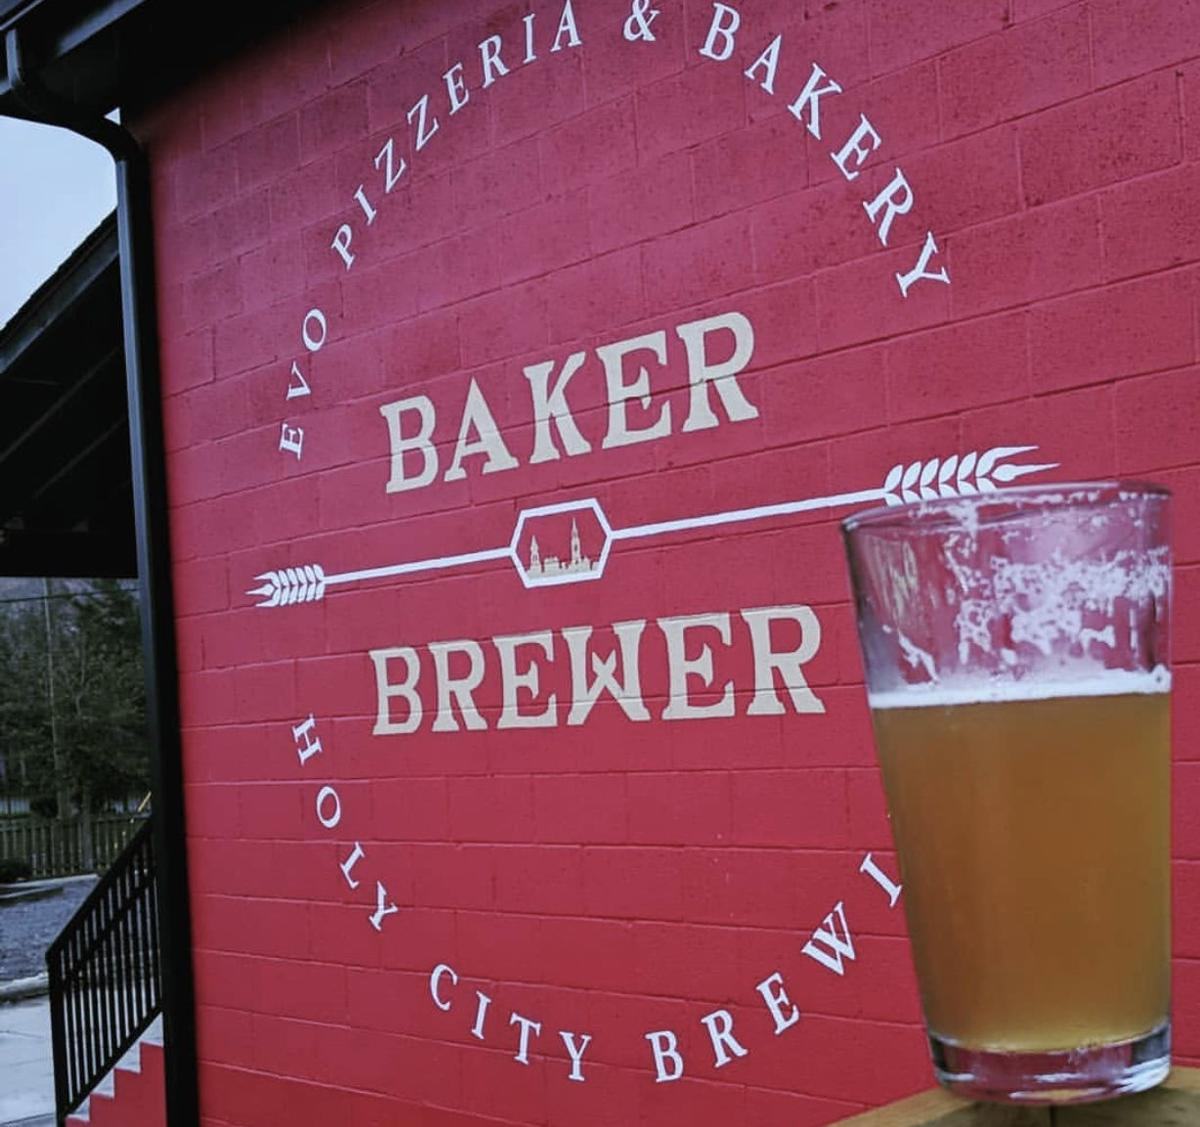 Baker and Brewer